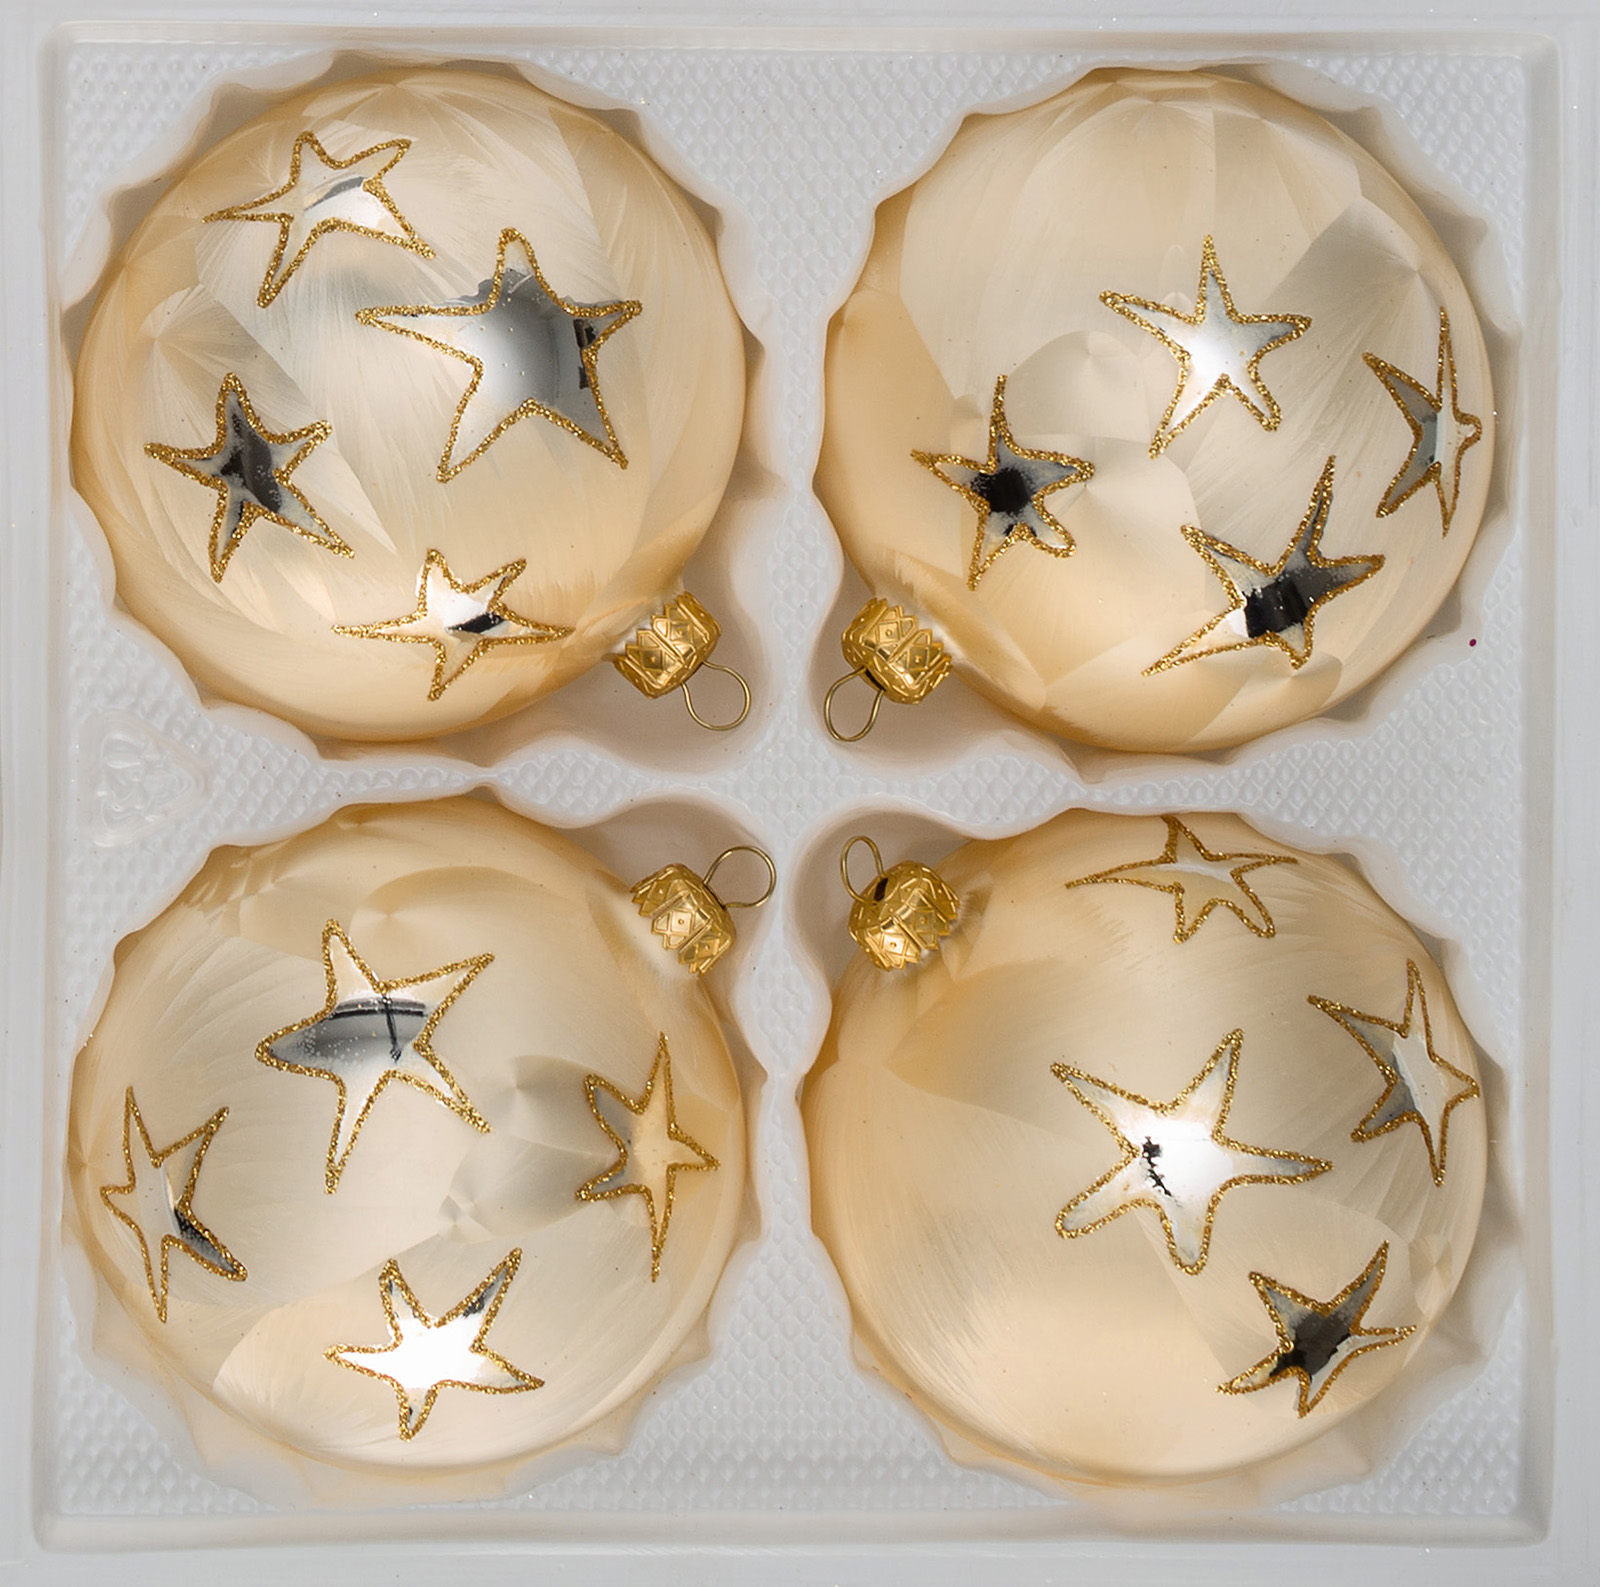 Christbaumkugeln Glas Rot Gold.4 Pcs Christmas Baubles Set 10cm O In Ice Champagne Gold Golden Star